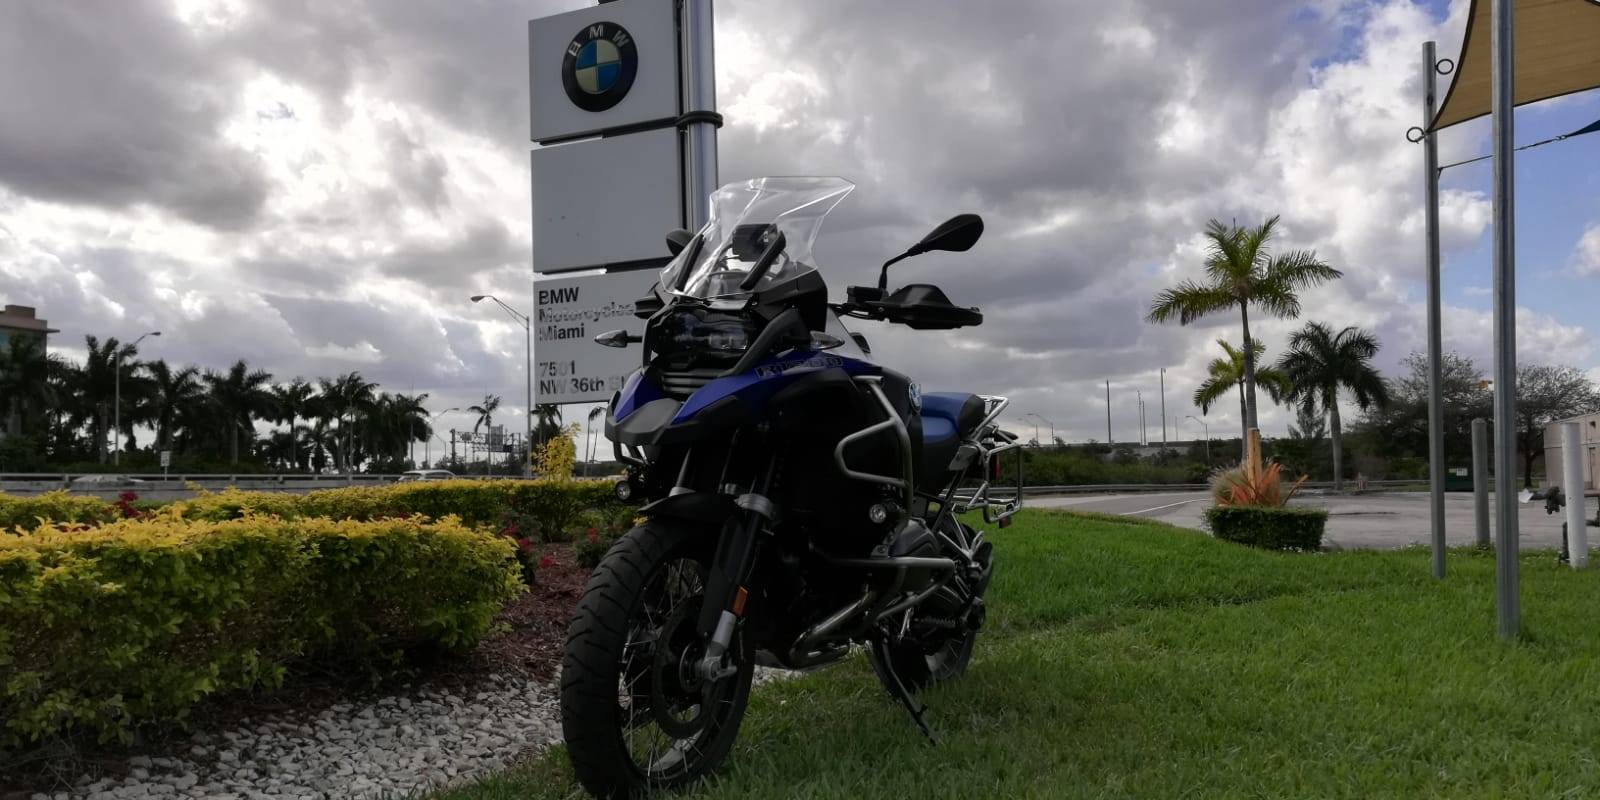 Used 2015 BMW R 1200 GSA for sale, BMW R 1200GSA for sale, BMW Motorcycle R1200GSA, used BMW Adventure, Dual, GS, BMW. BMW Motorcycles of Miami, Motorcycles of Miami, Motorcycles Miami, New Motorcycles, Used Motorcycles, pre-owned. #BMWMotorcyclesOfMiami #MotorcyclesOfMiami. - Photo 3